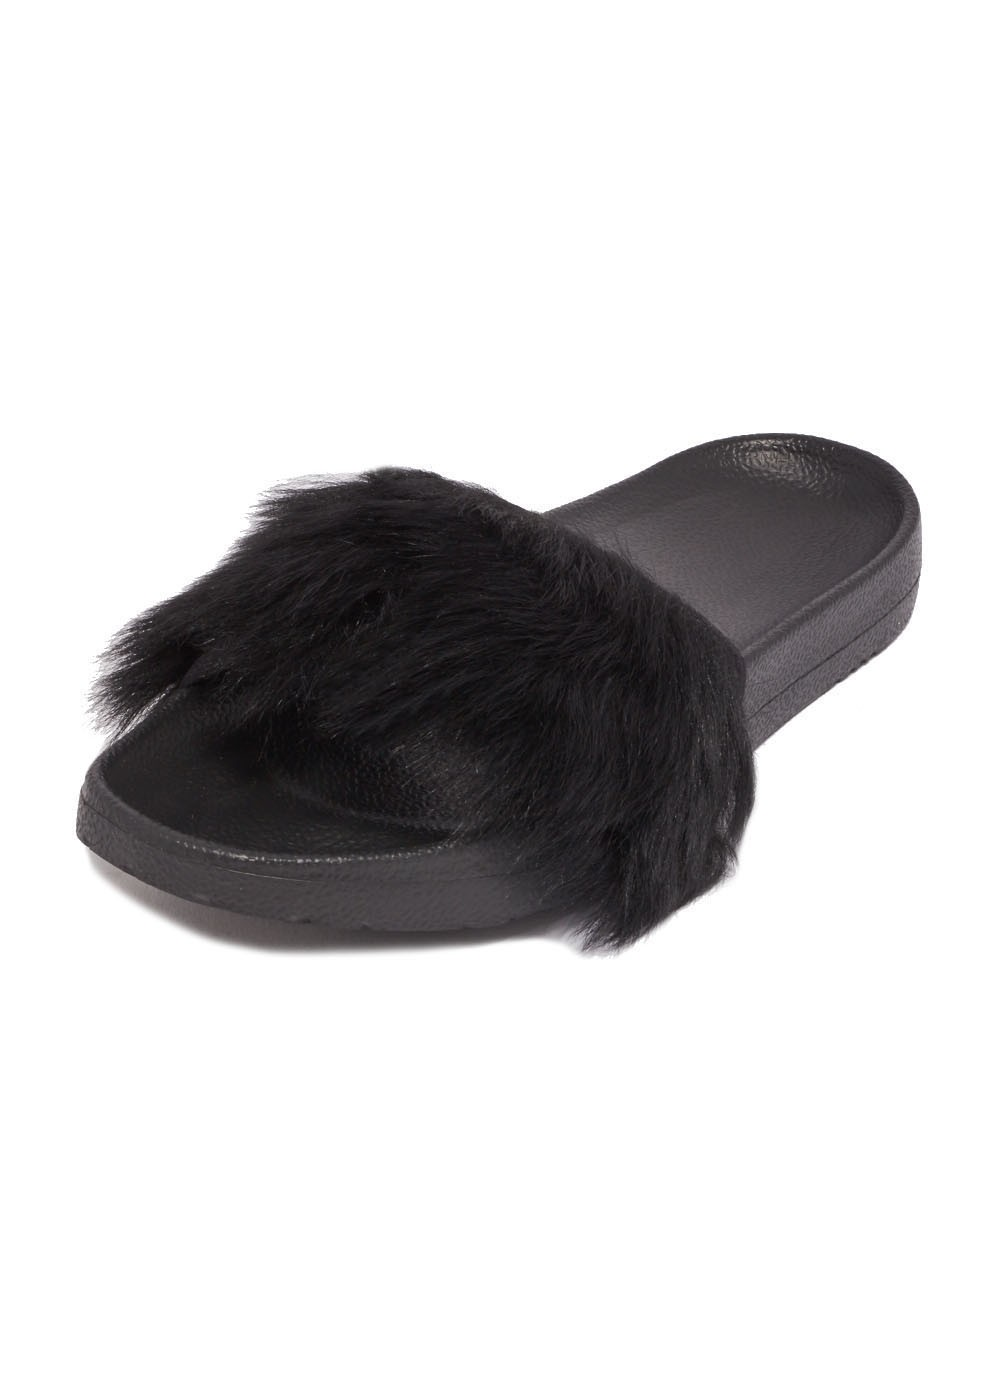 【最大32%OFF】ROYALE|BLACK|モカシン|UGG